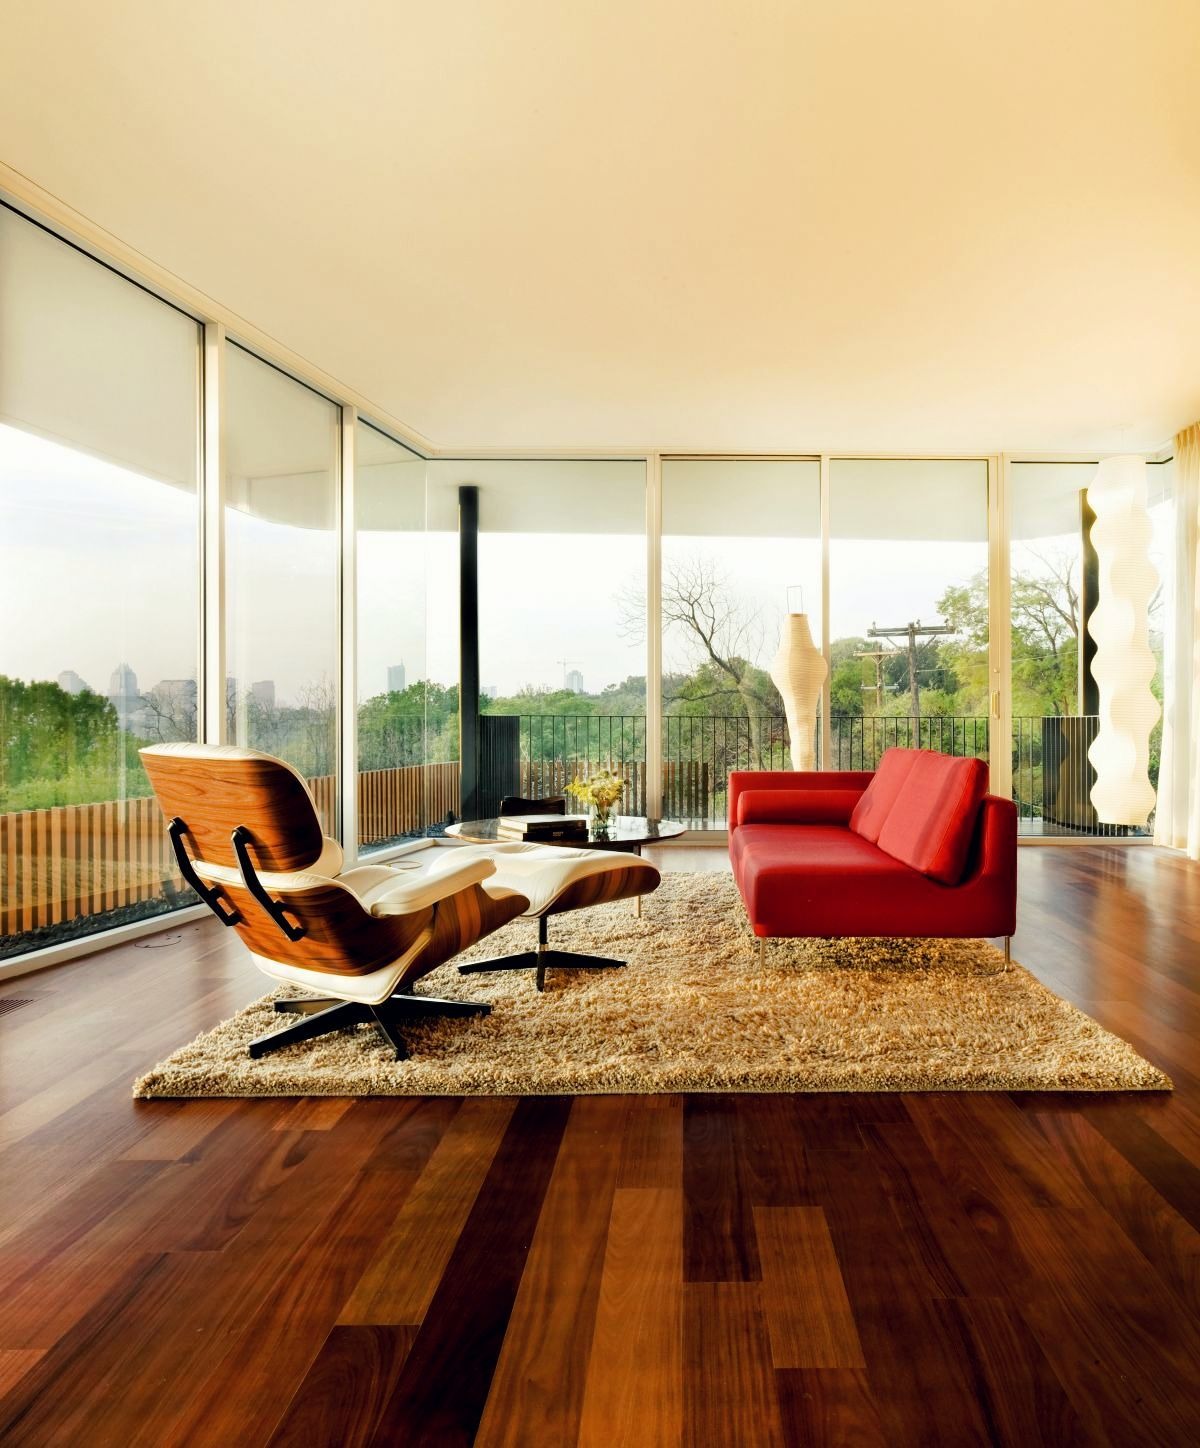 Remarkable Wood Glass Interior With Eames Chair My Favorite Chair Gamerscity Chair Design For Home Gamerscityorg